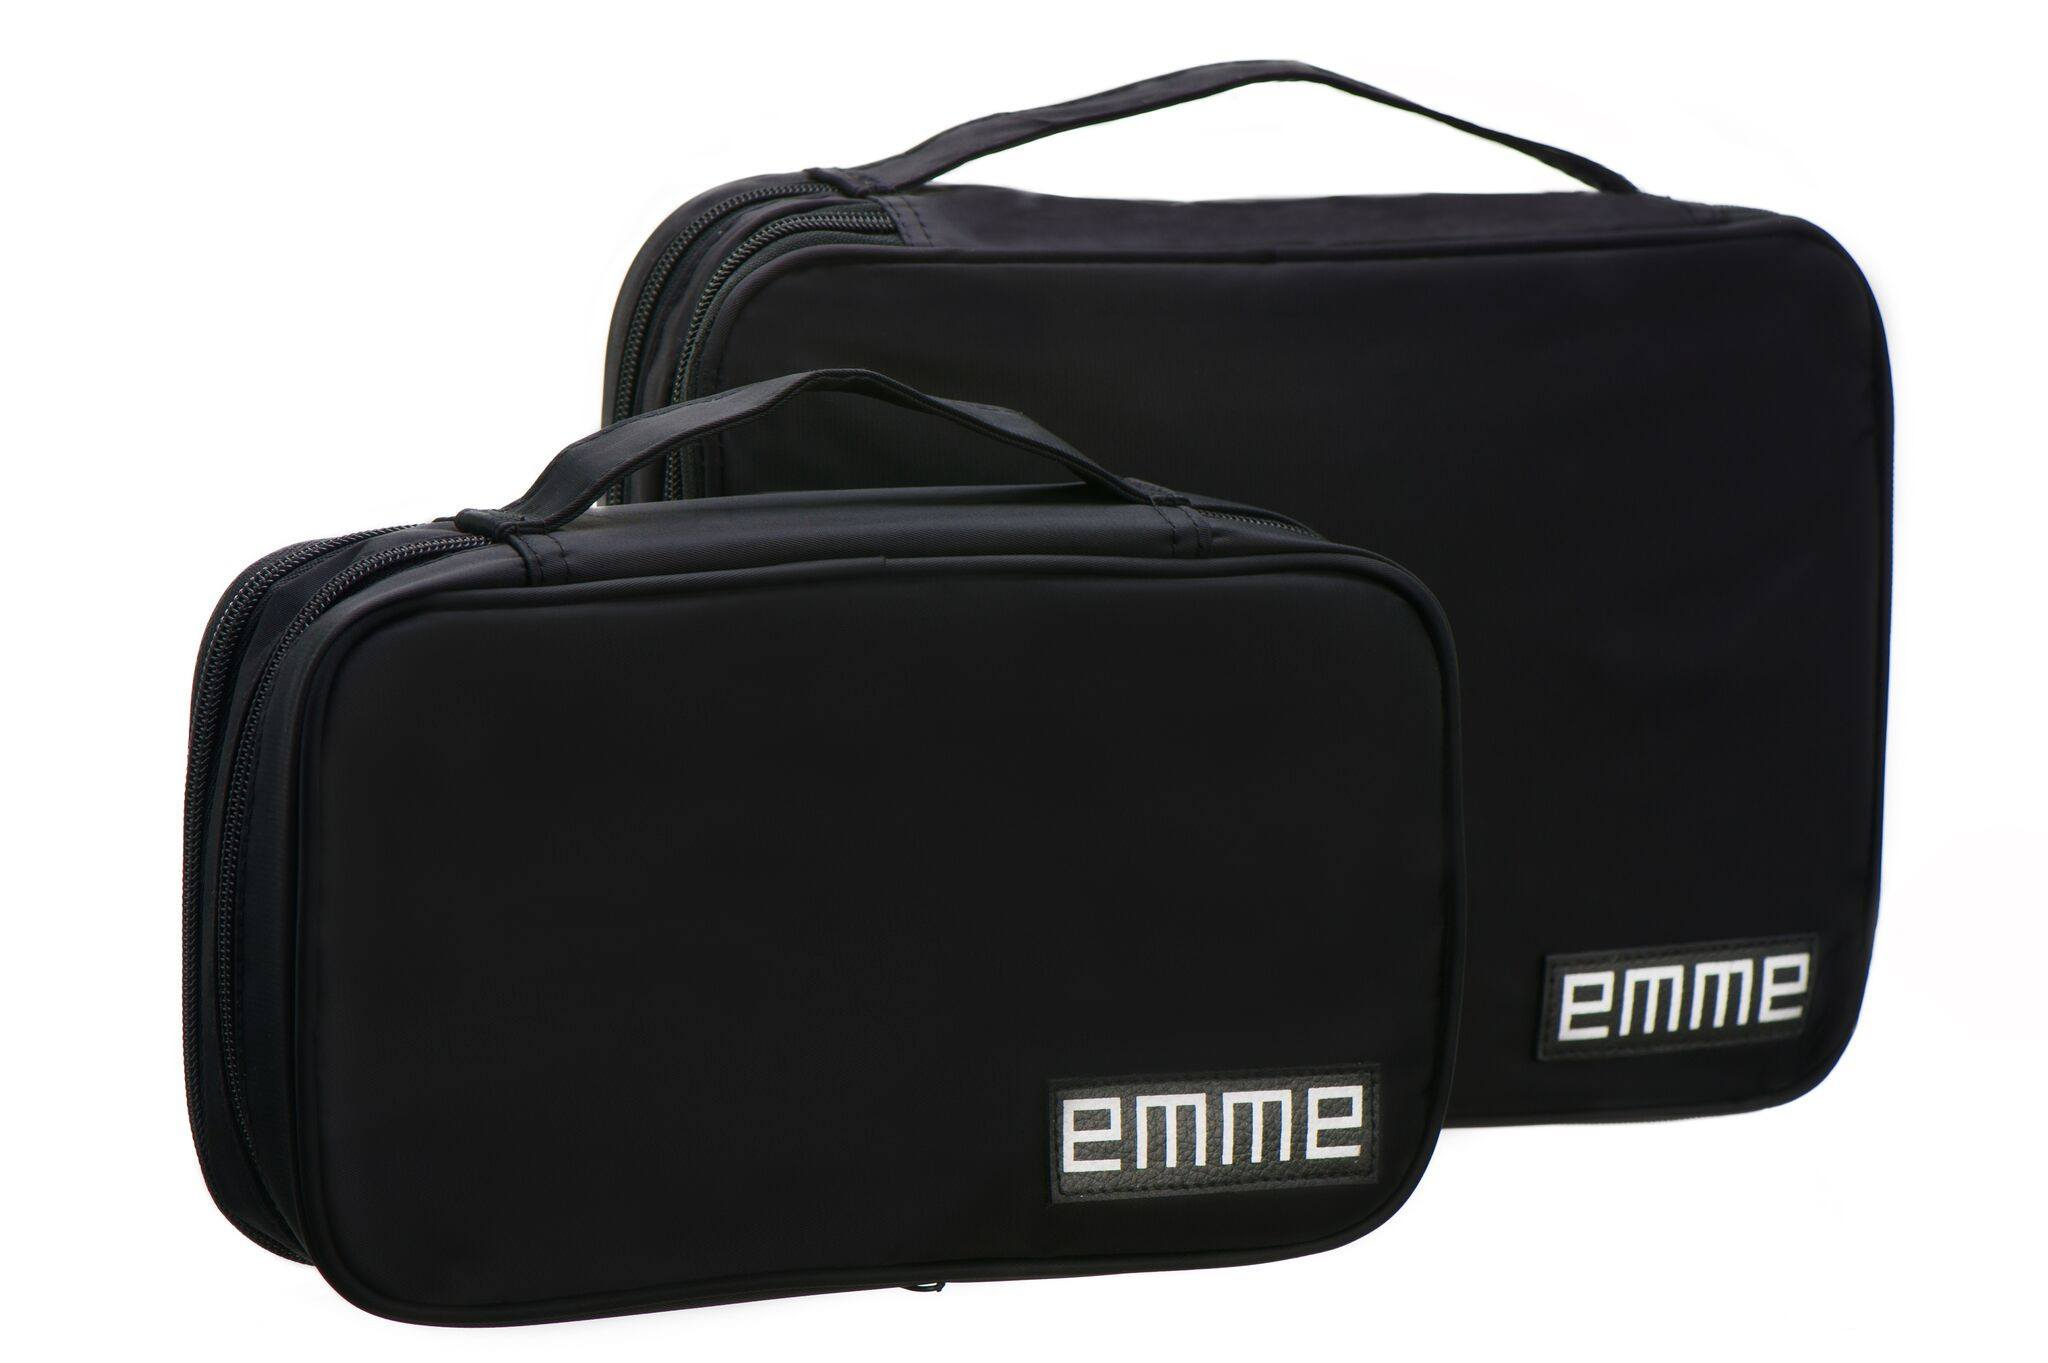 Accessories - Wallets & Small Goods - The Original EMME Bag